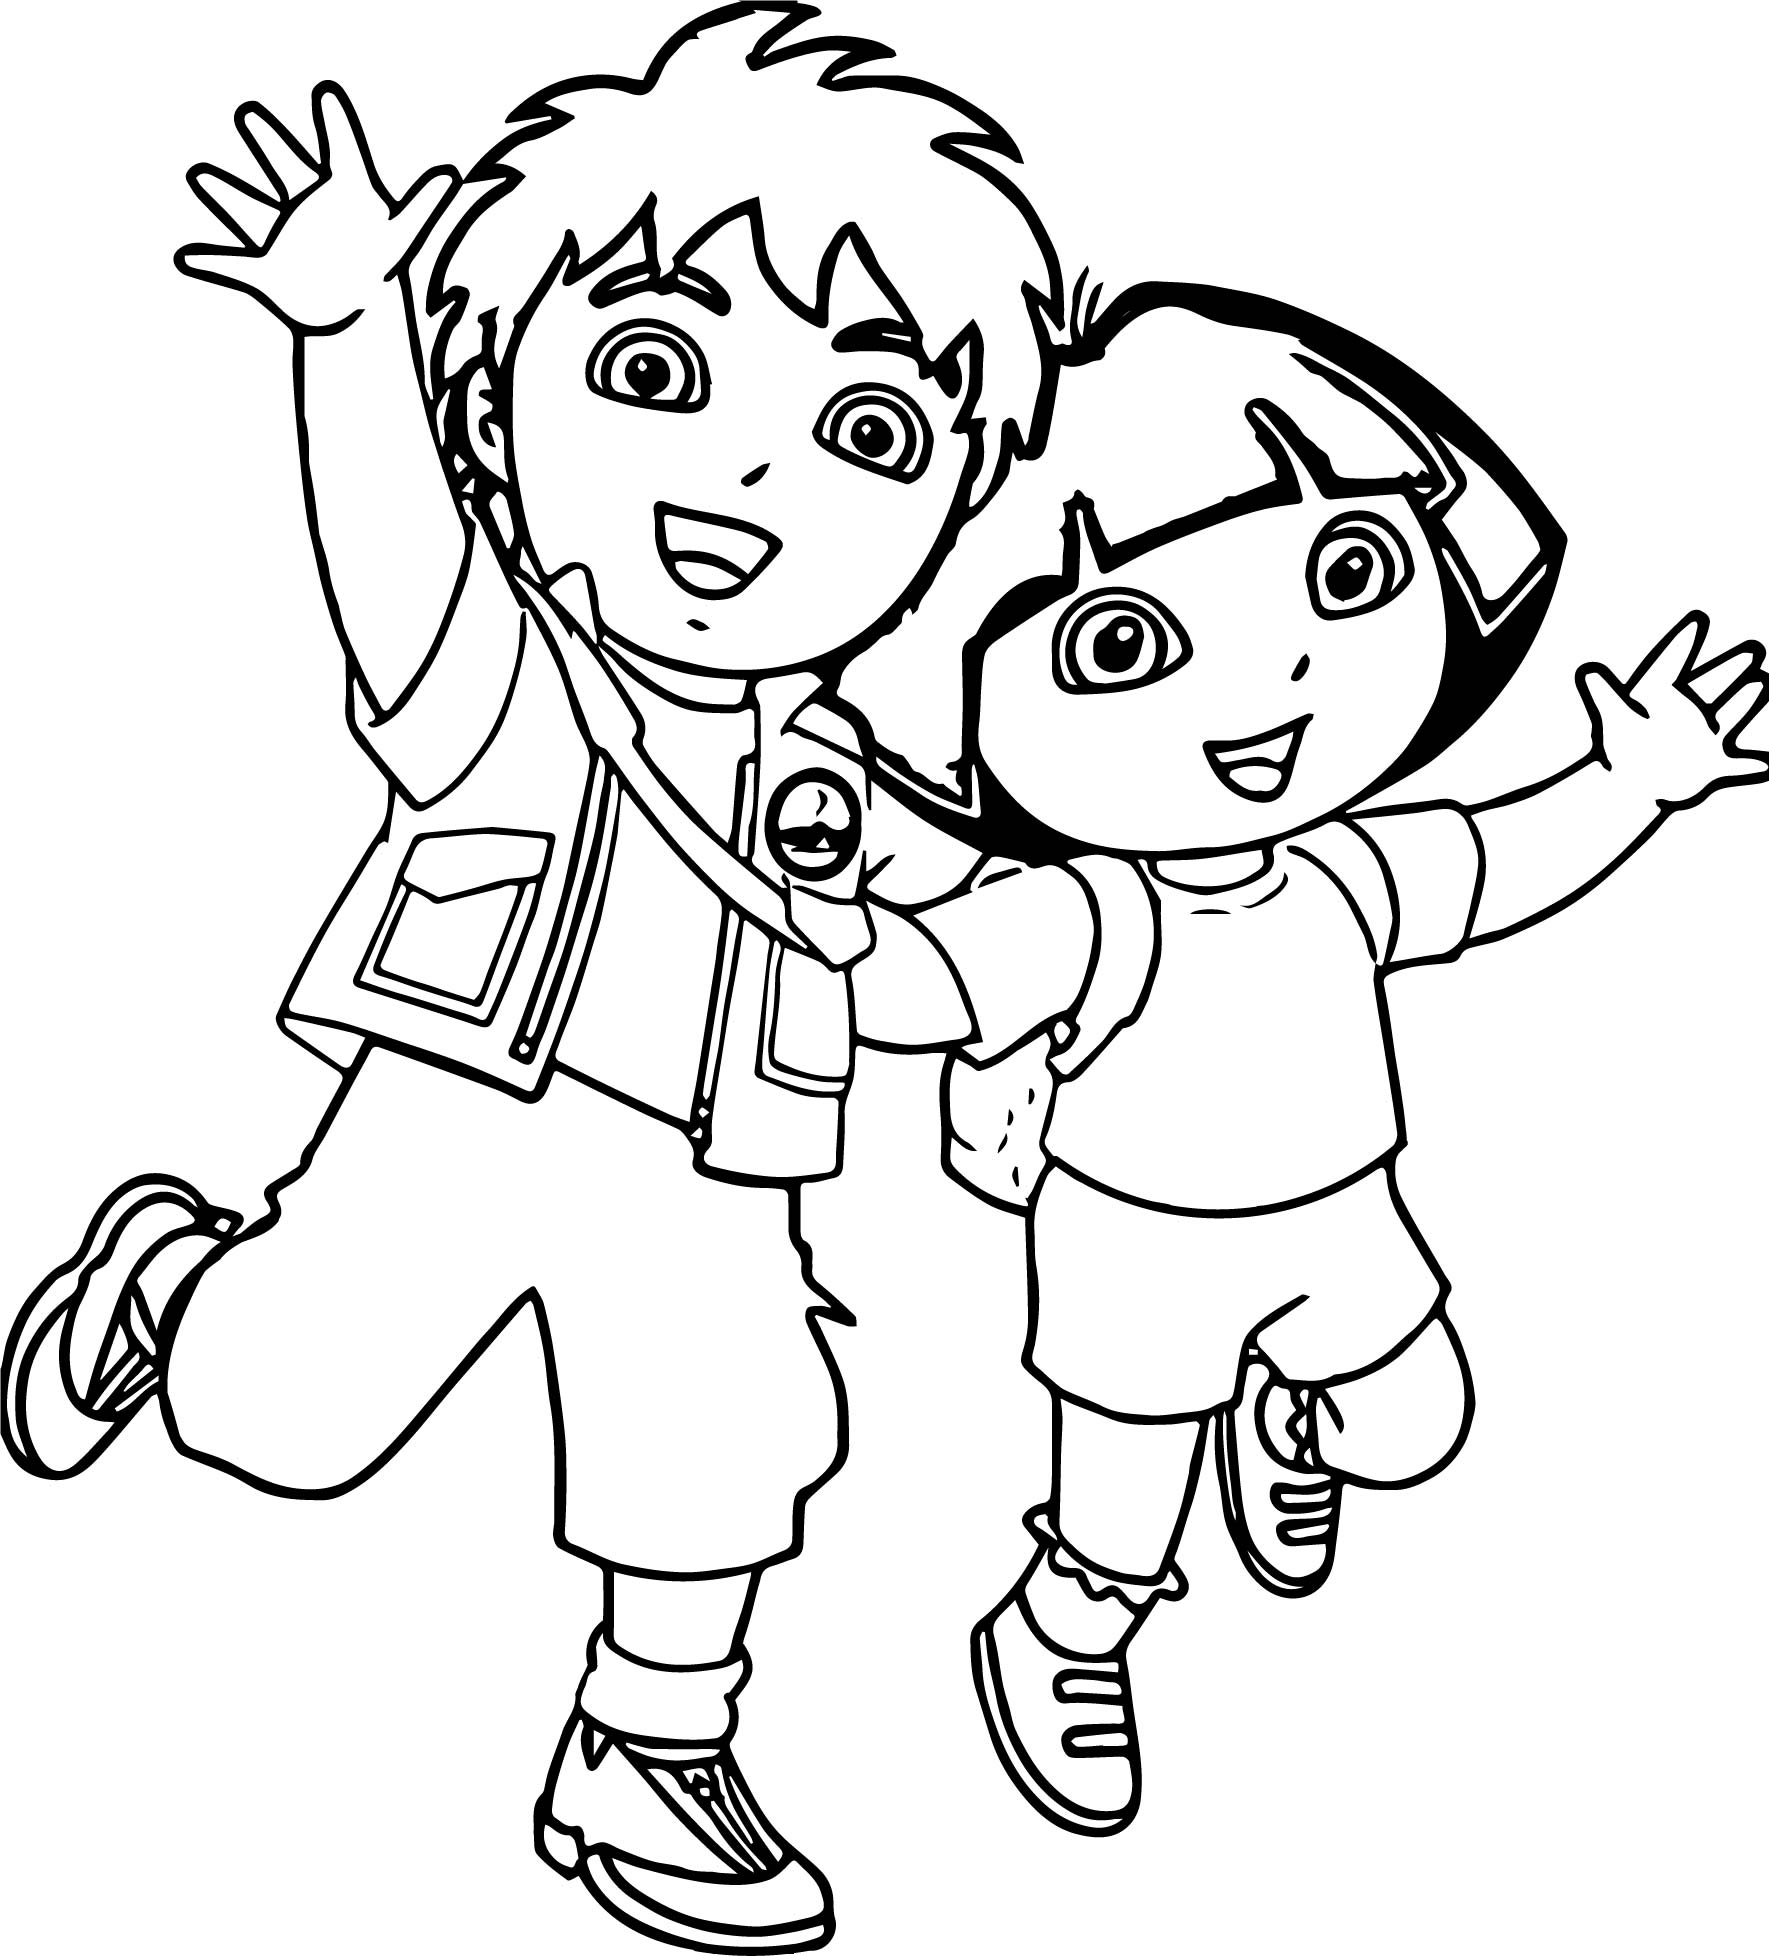 Go diego go dora boy girl coloring page for Coloring pages girl and boy